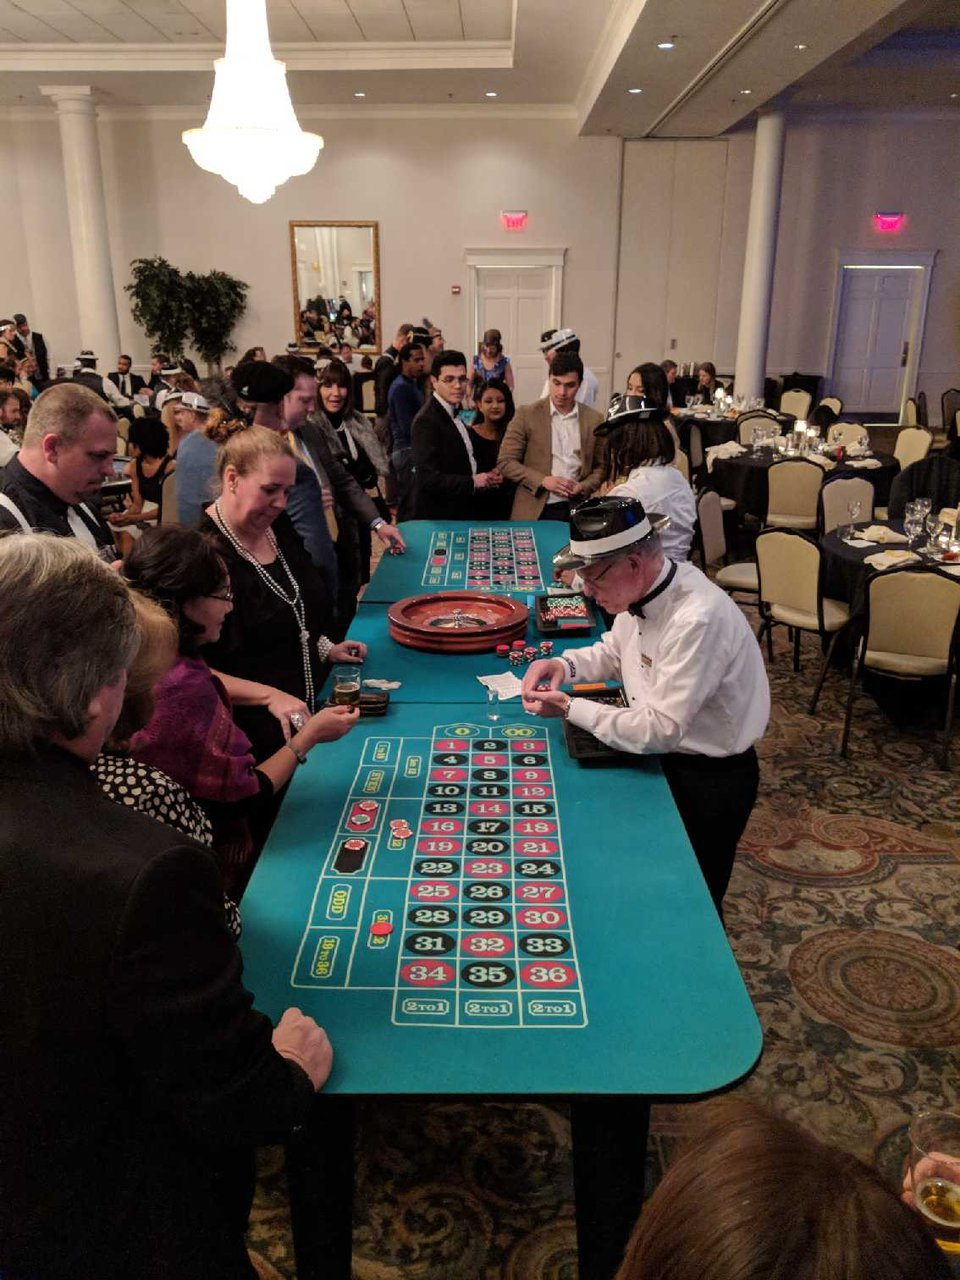 Corporate Events photo casino double roulette table.jpg